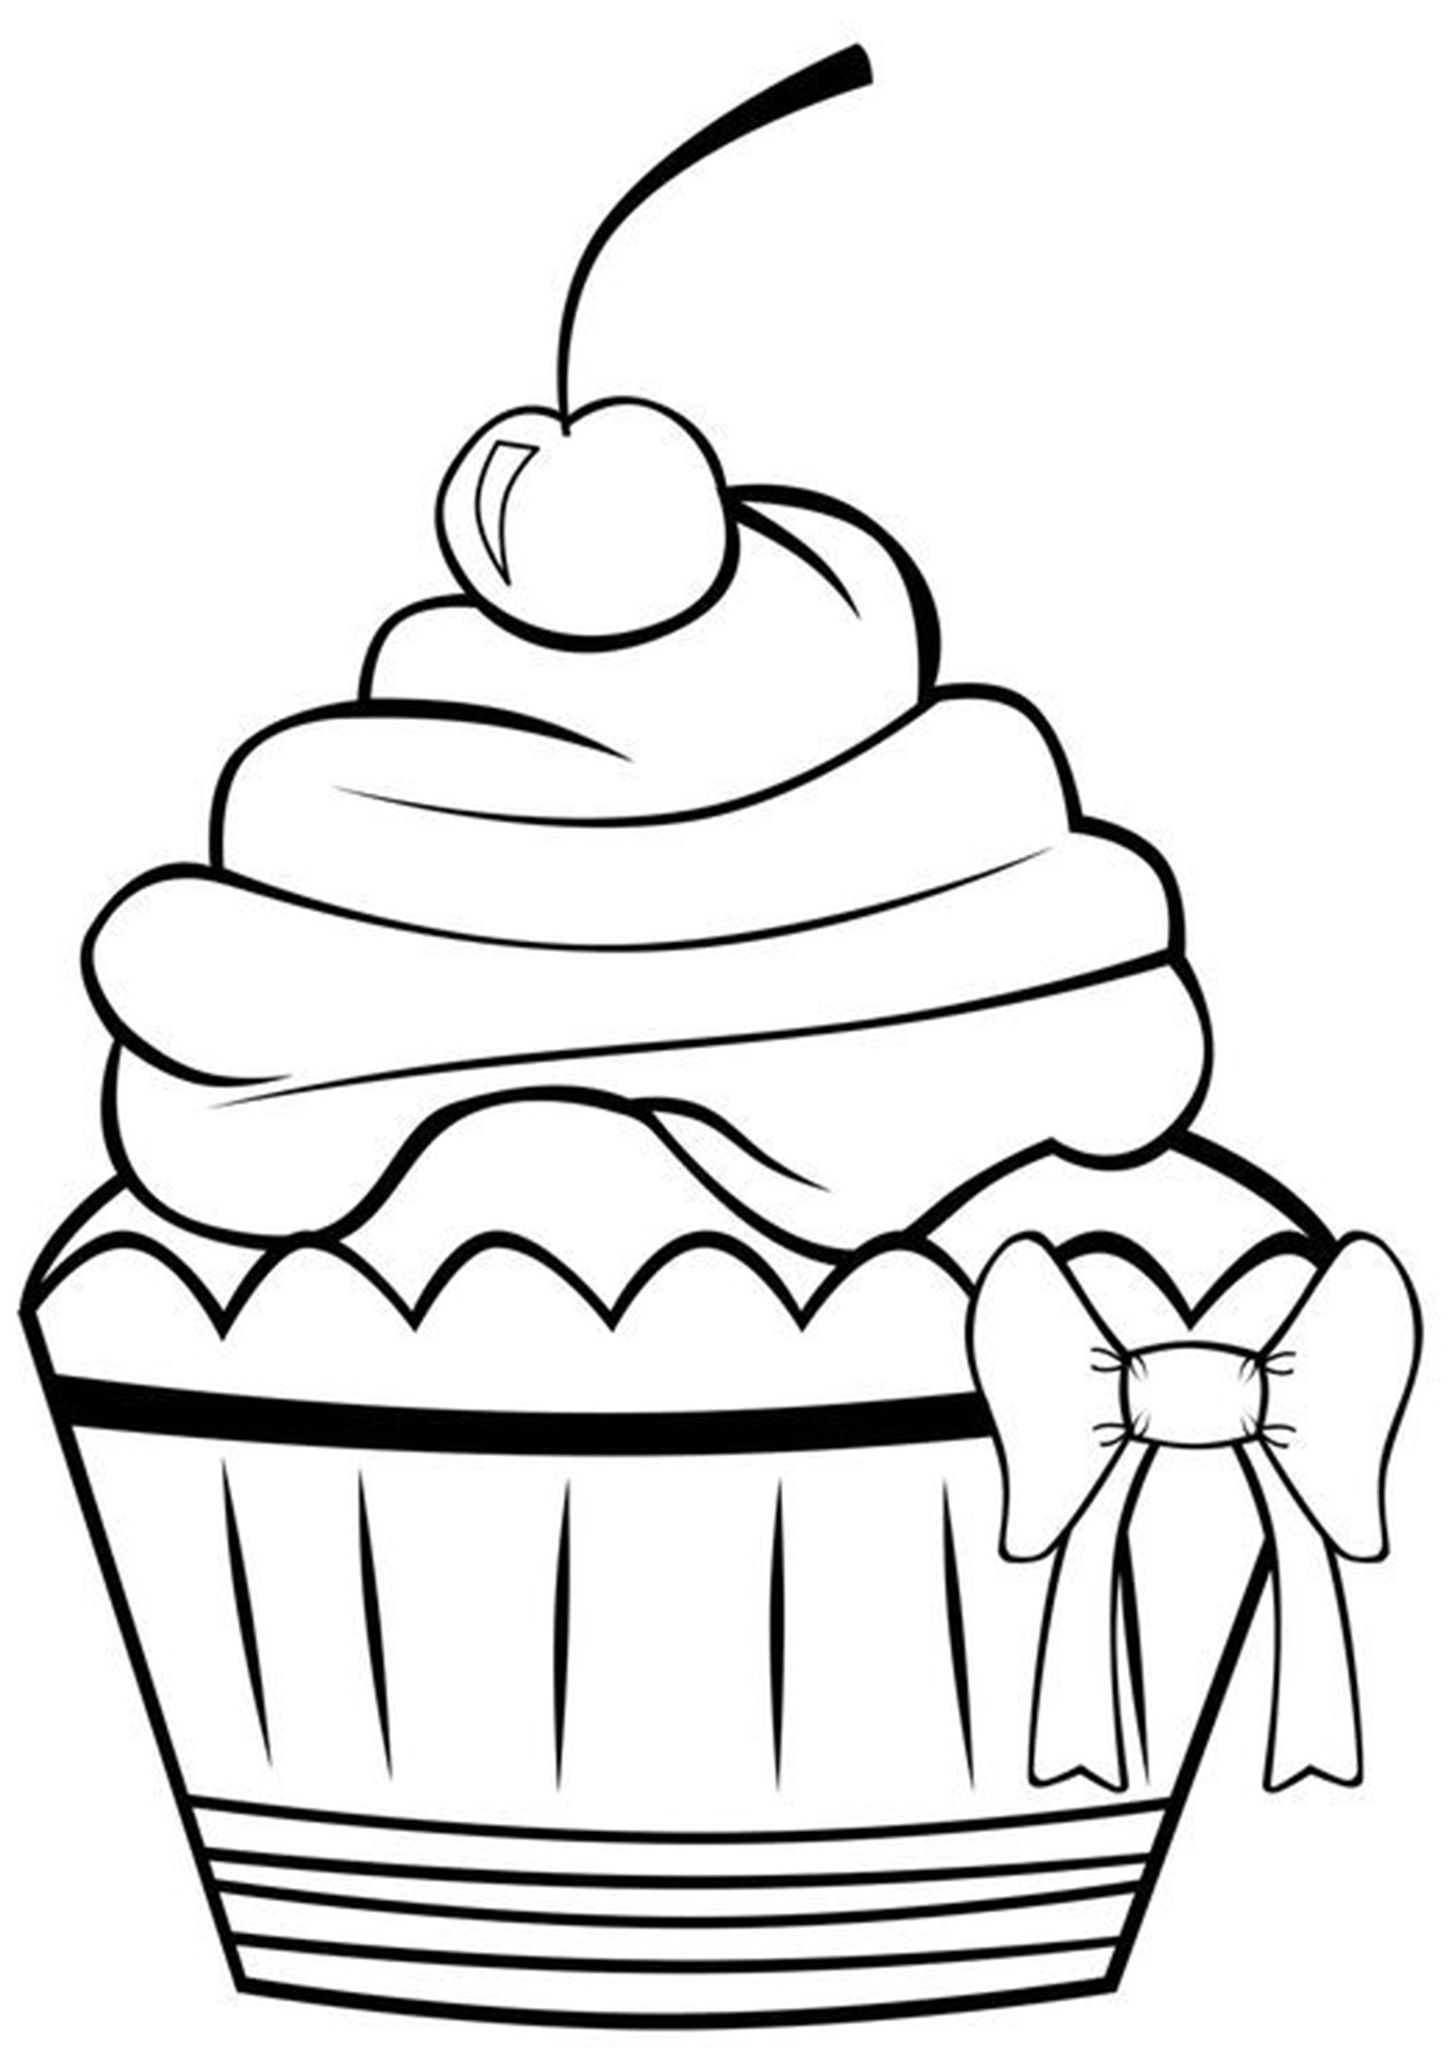 Free Easy To Print Cupcake Coloring Pages Cupcake Coloring